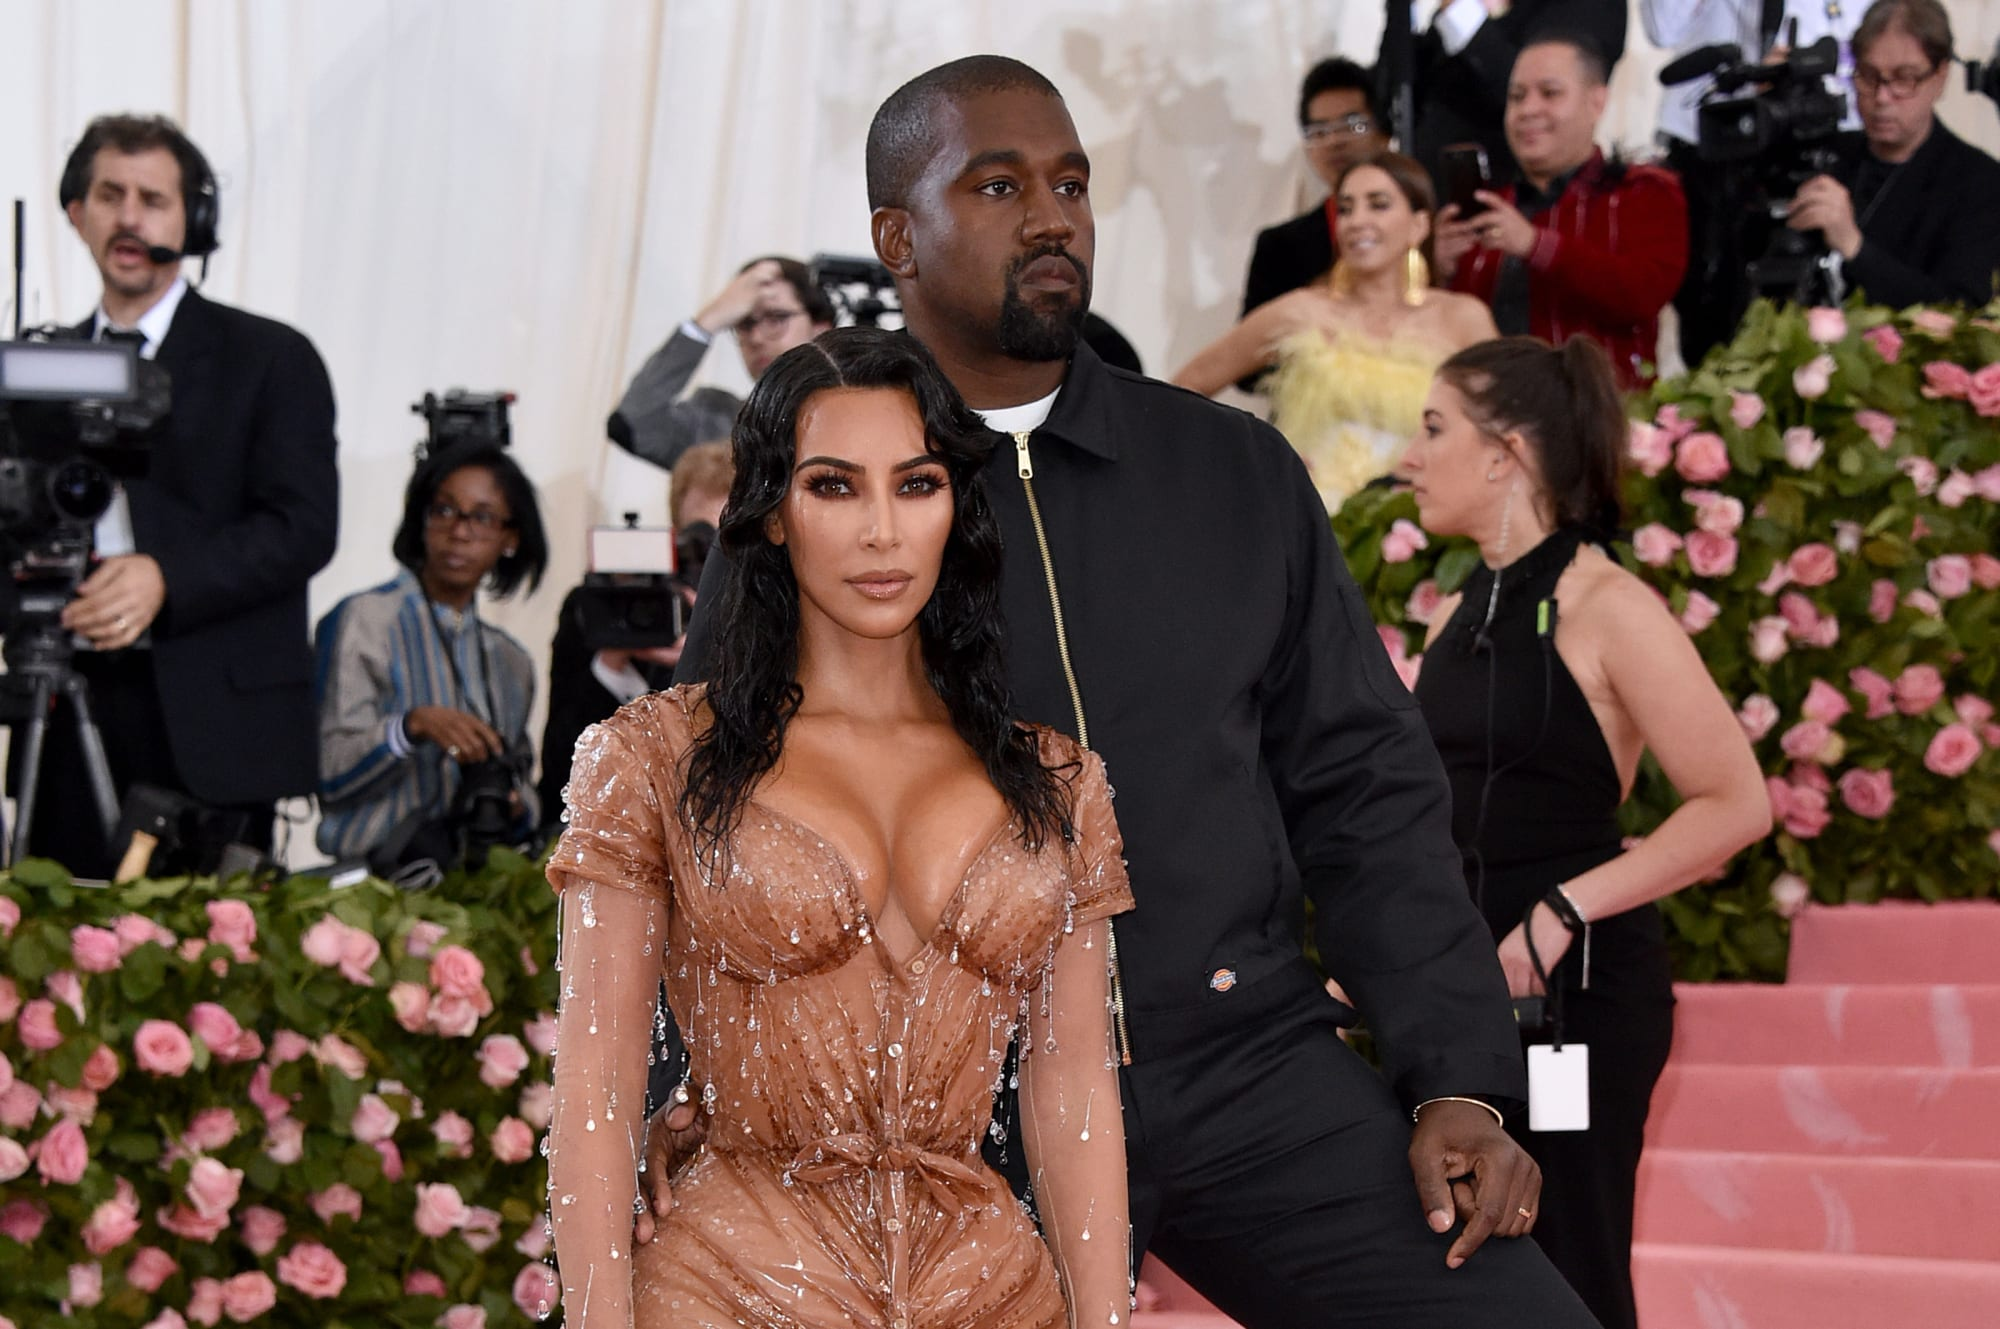 Kim Kardashian's 'trust issues' with Kanye West was part of why they split